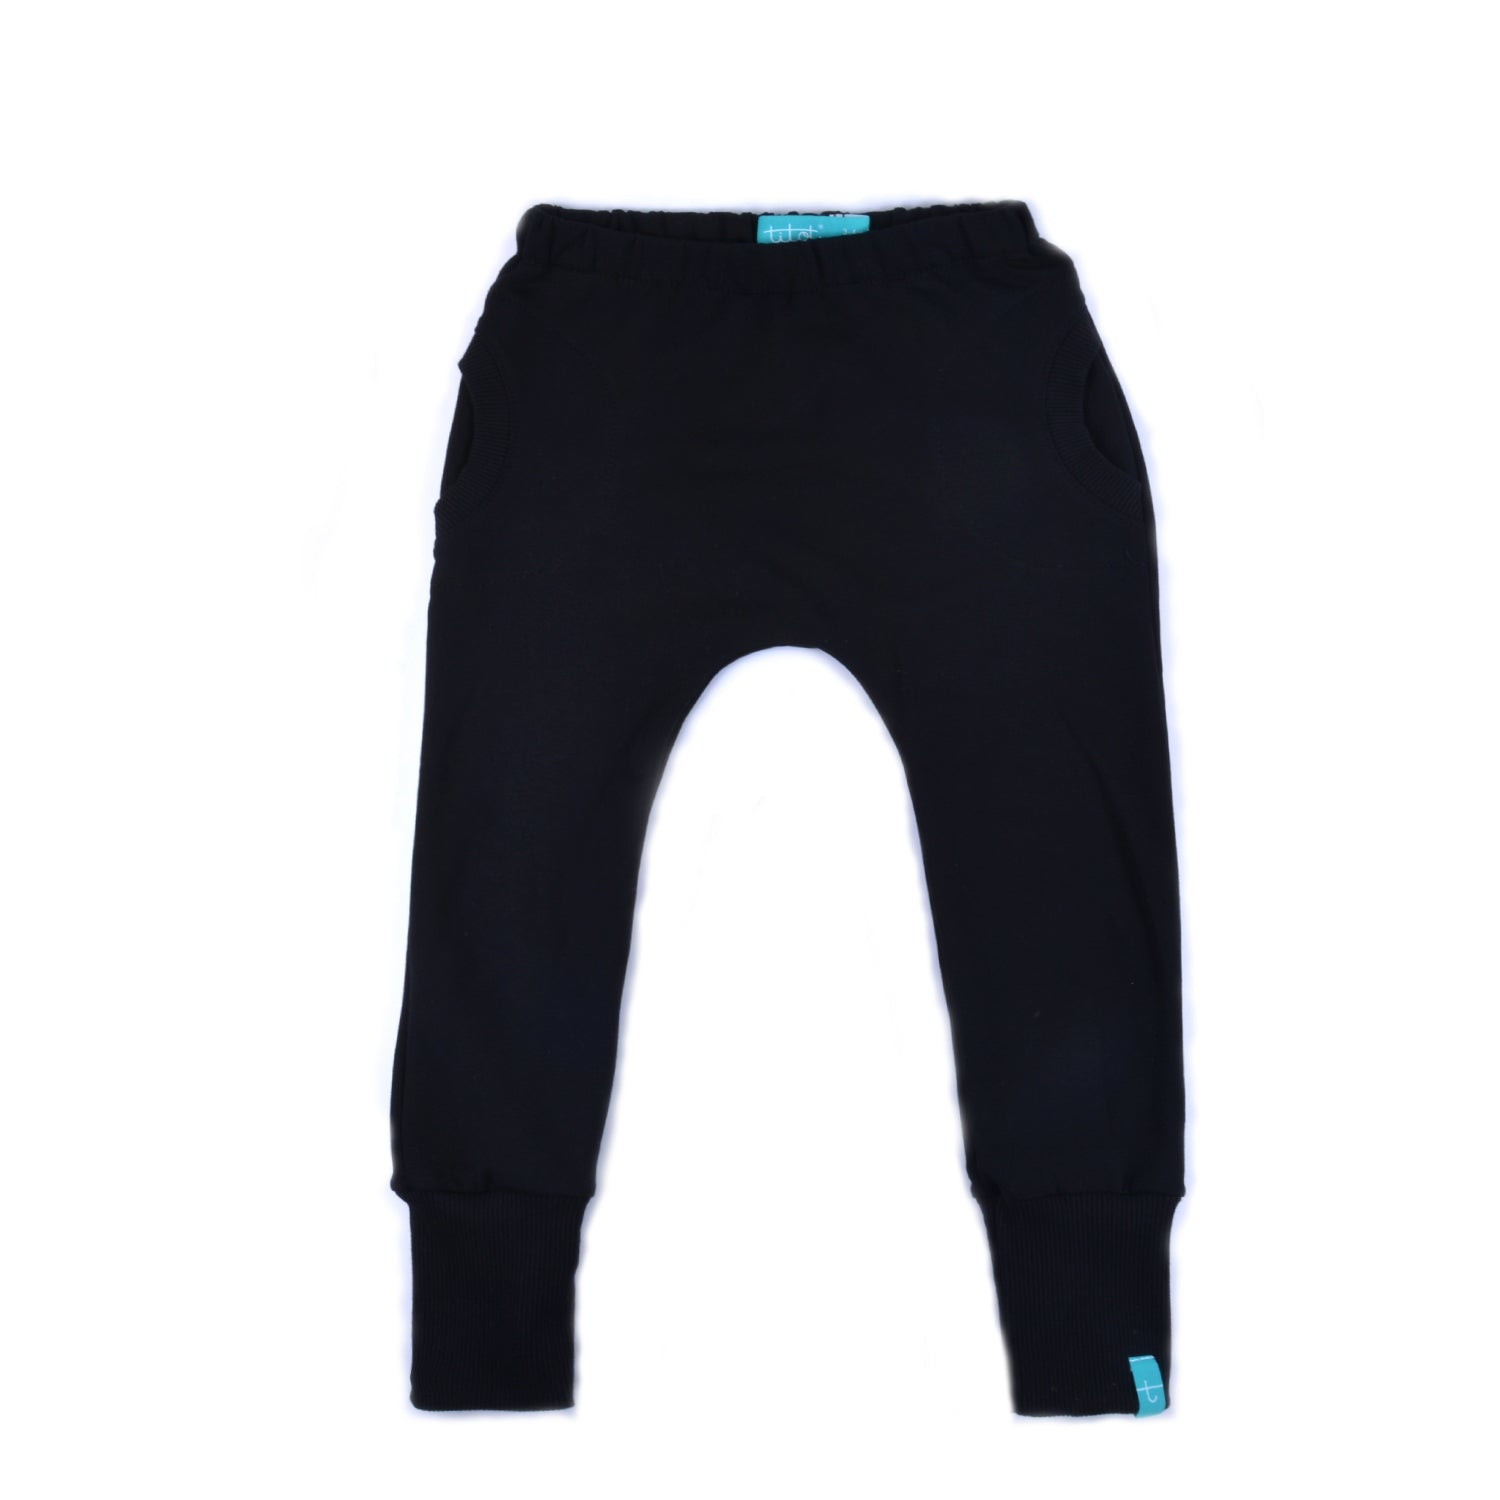 New Black Pants with round pockets